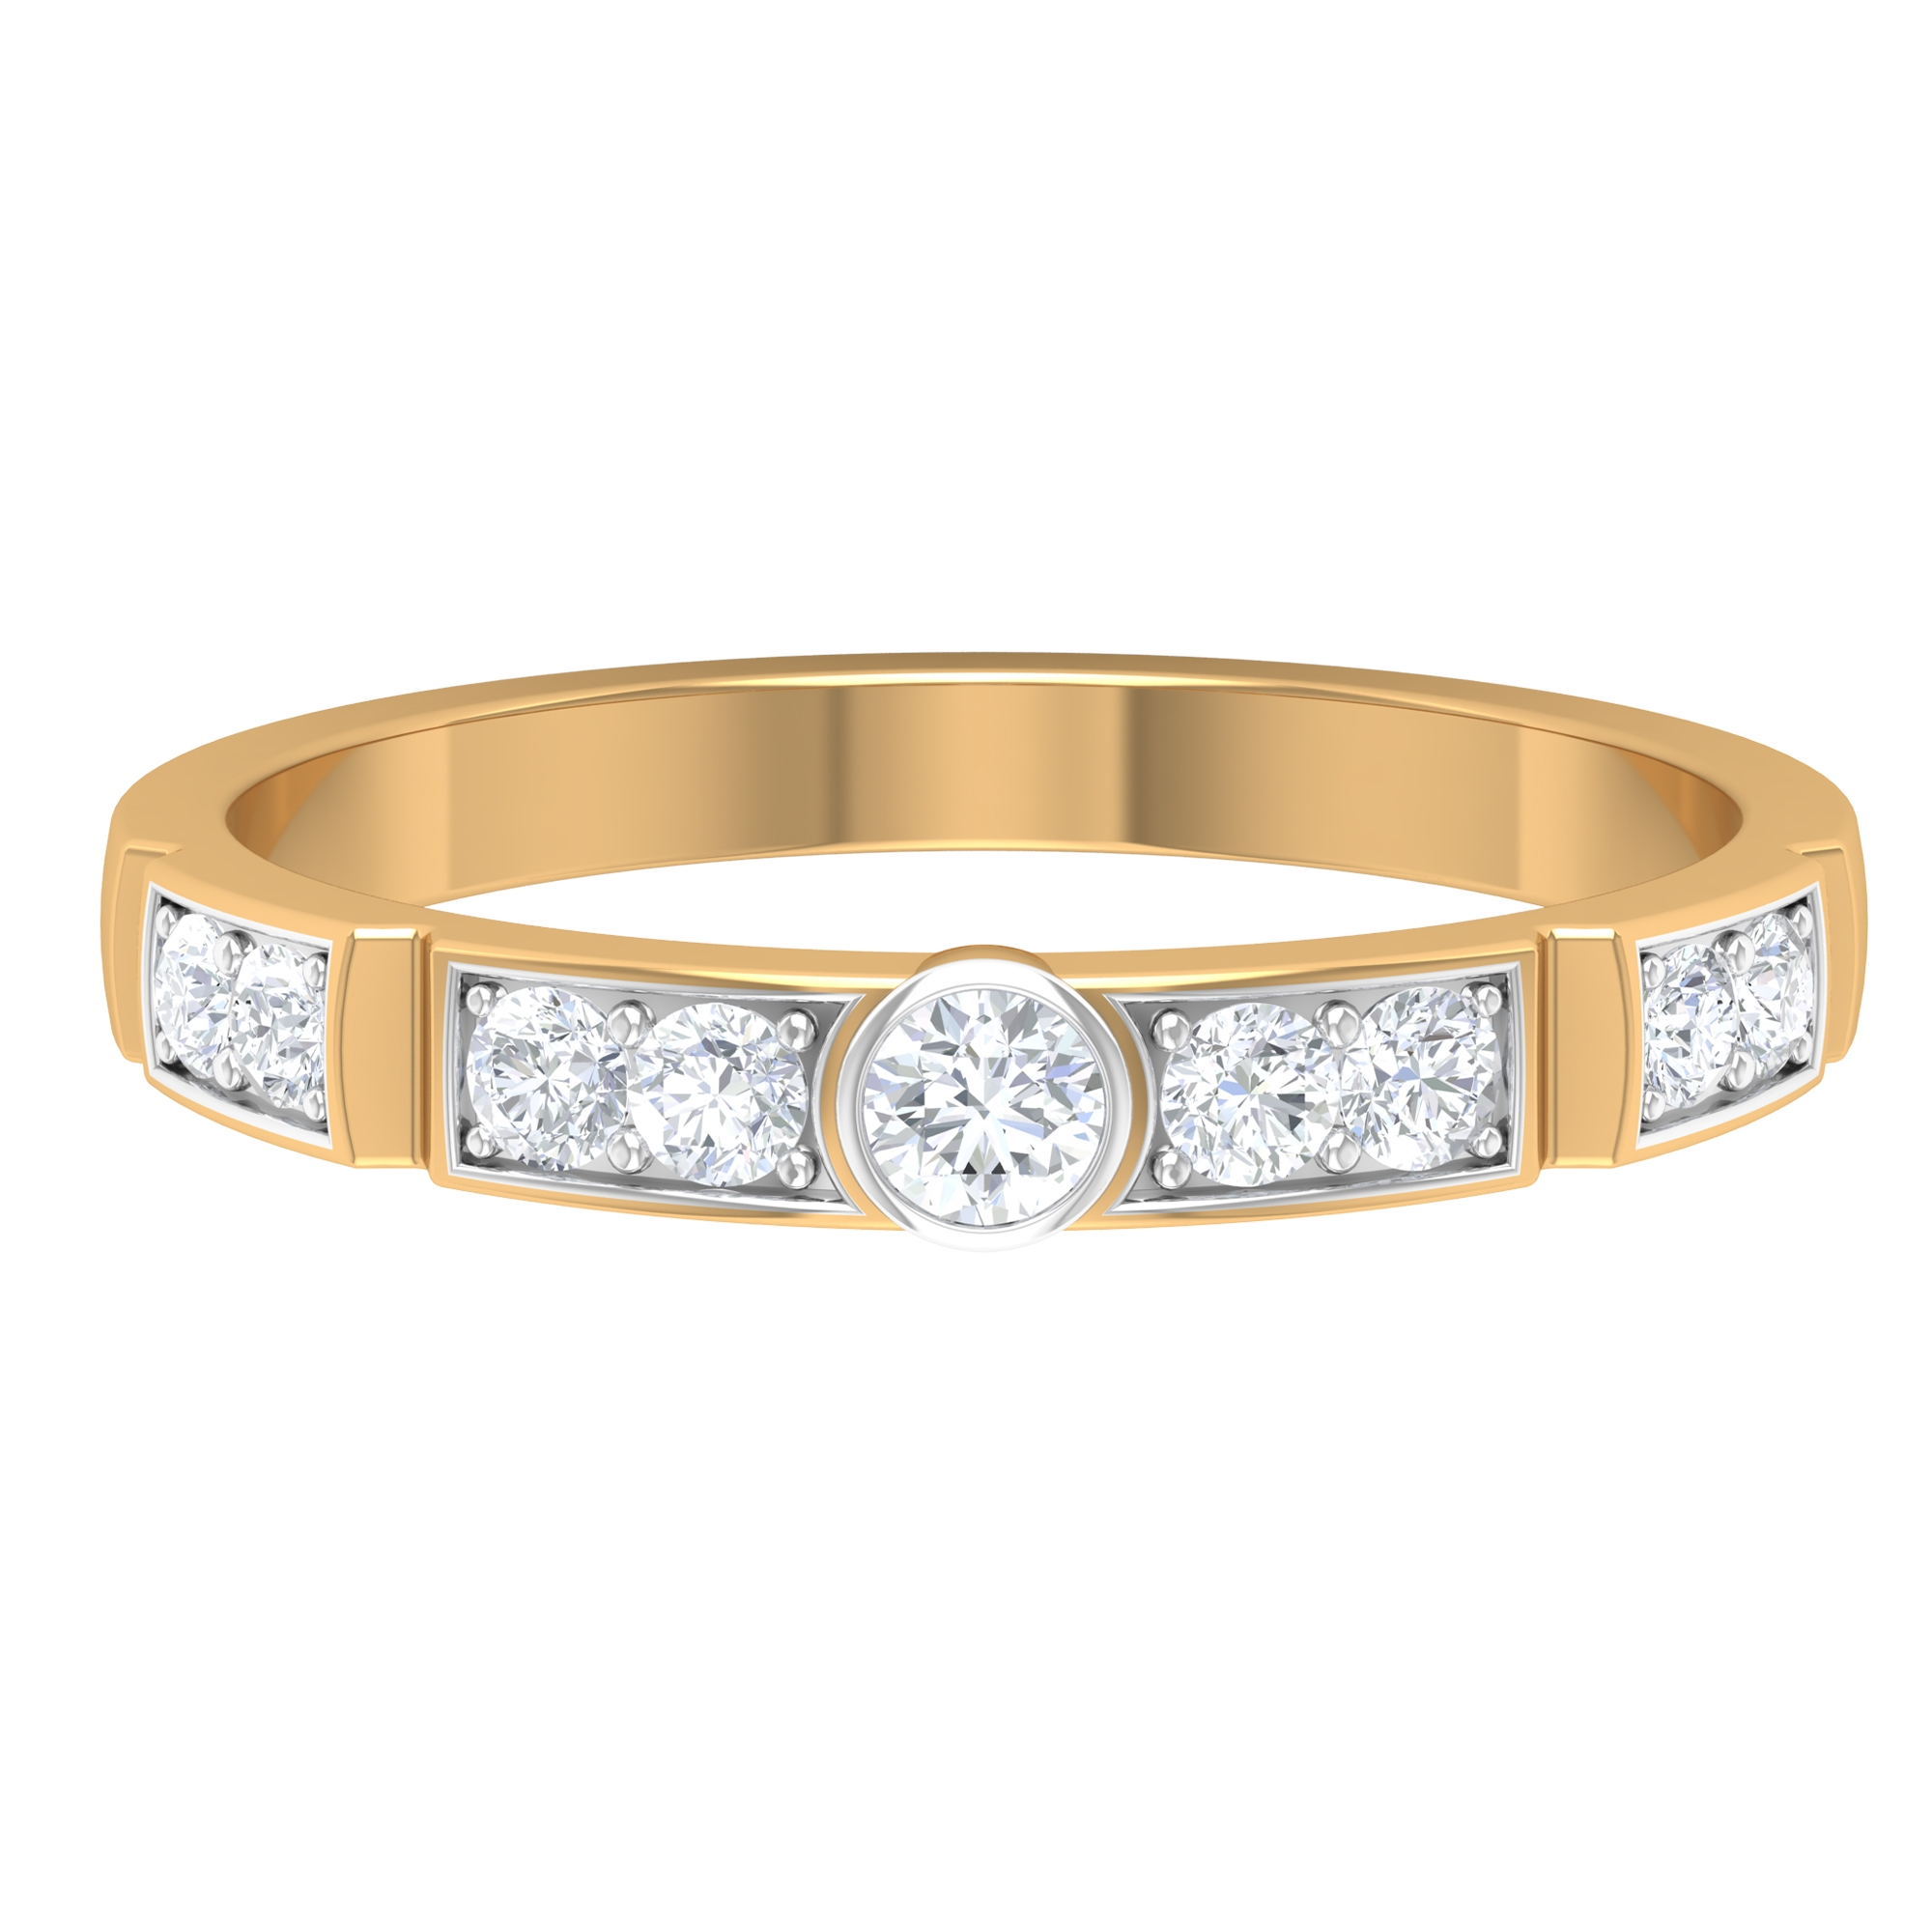 1/2 CT Bezel Set Diamond Band in Two Tone Gold